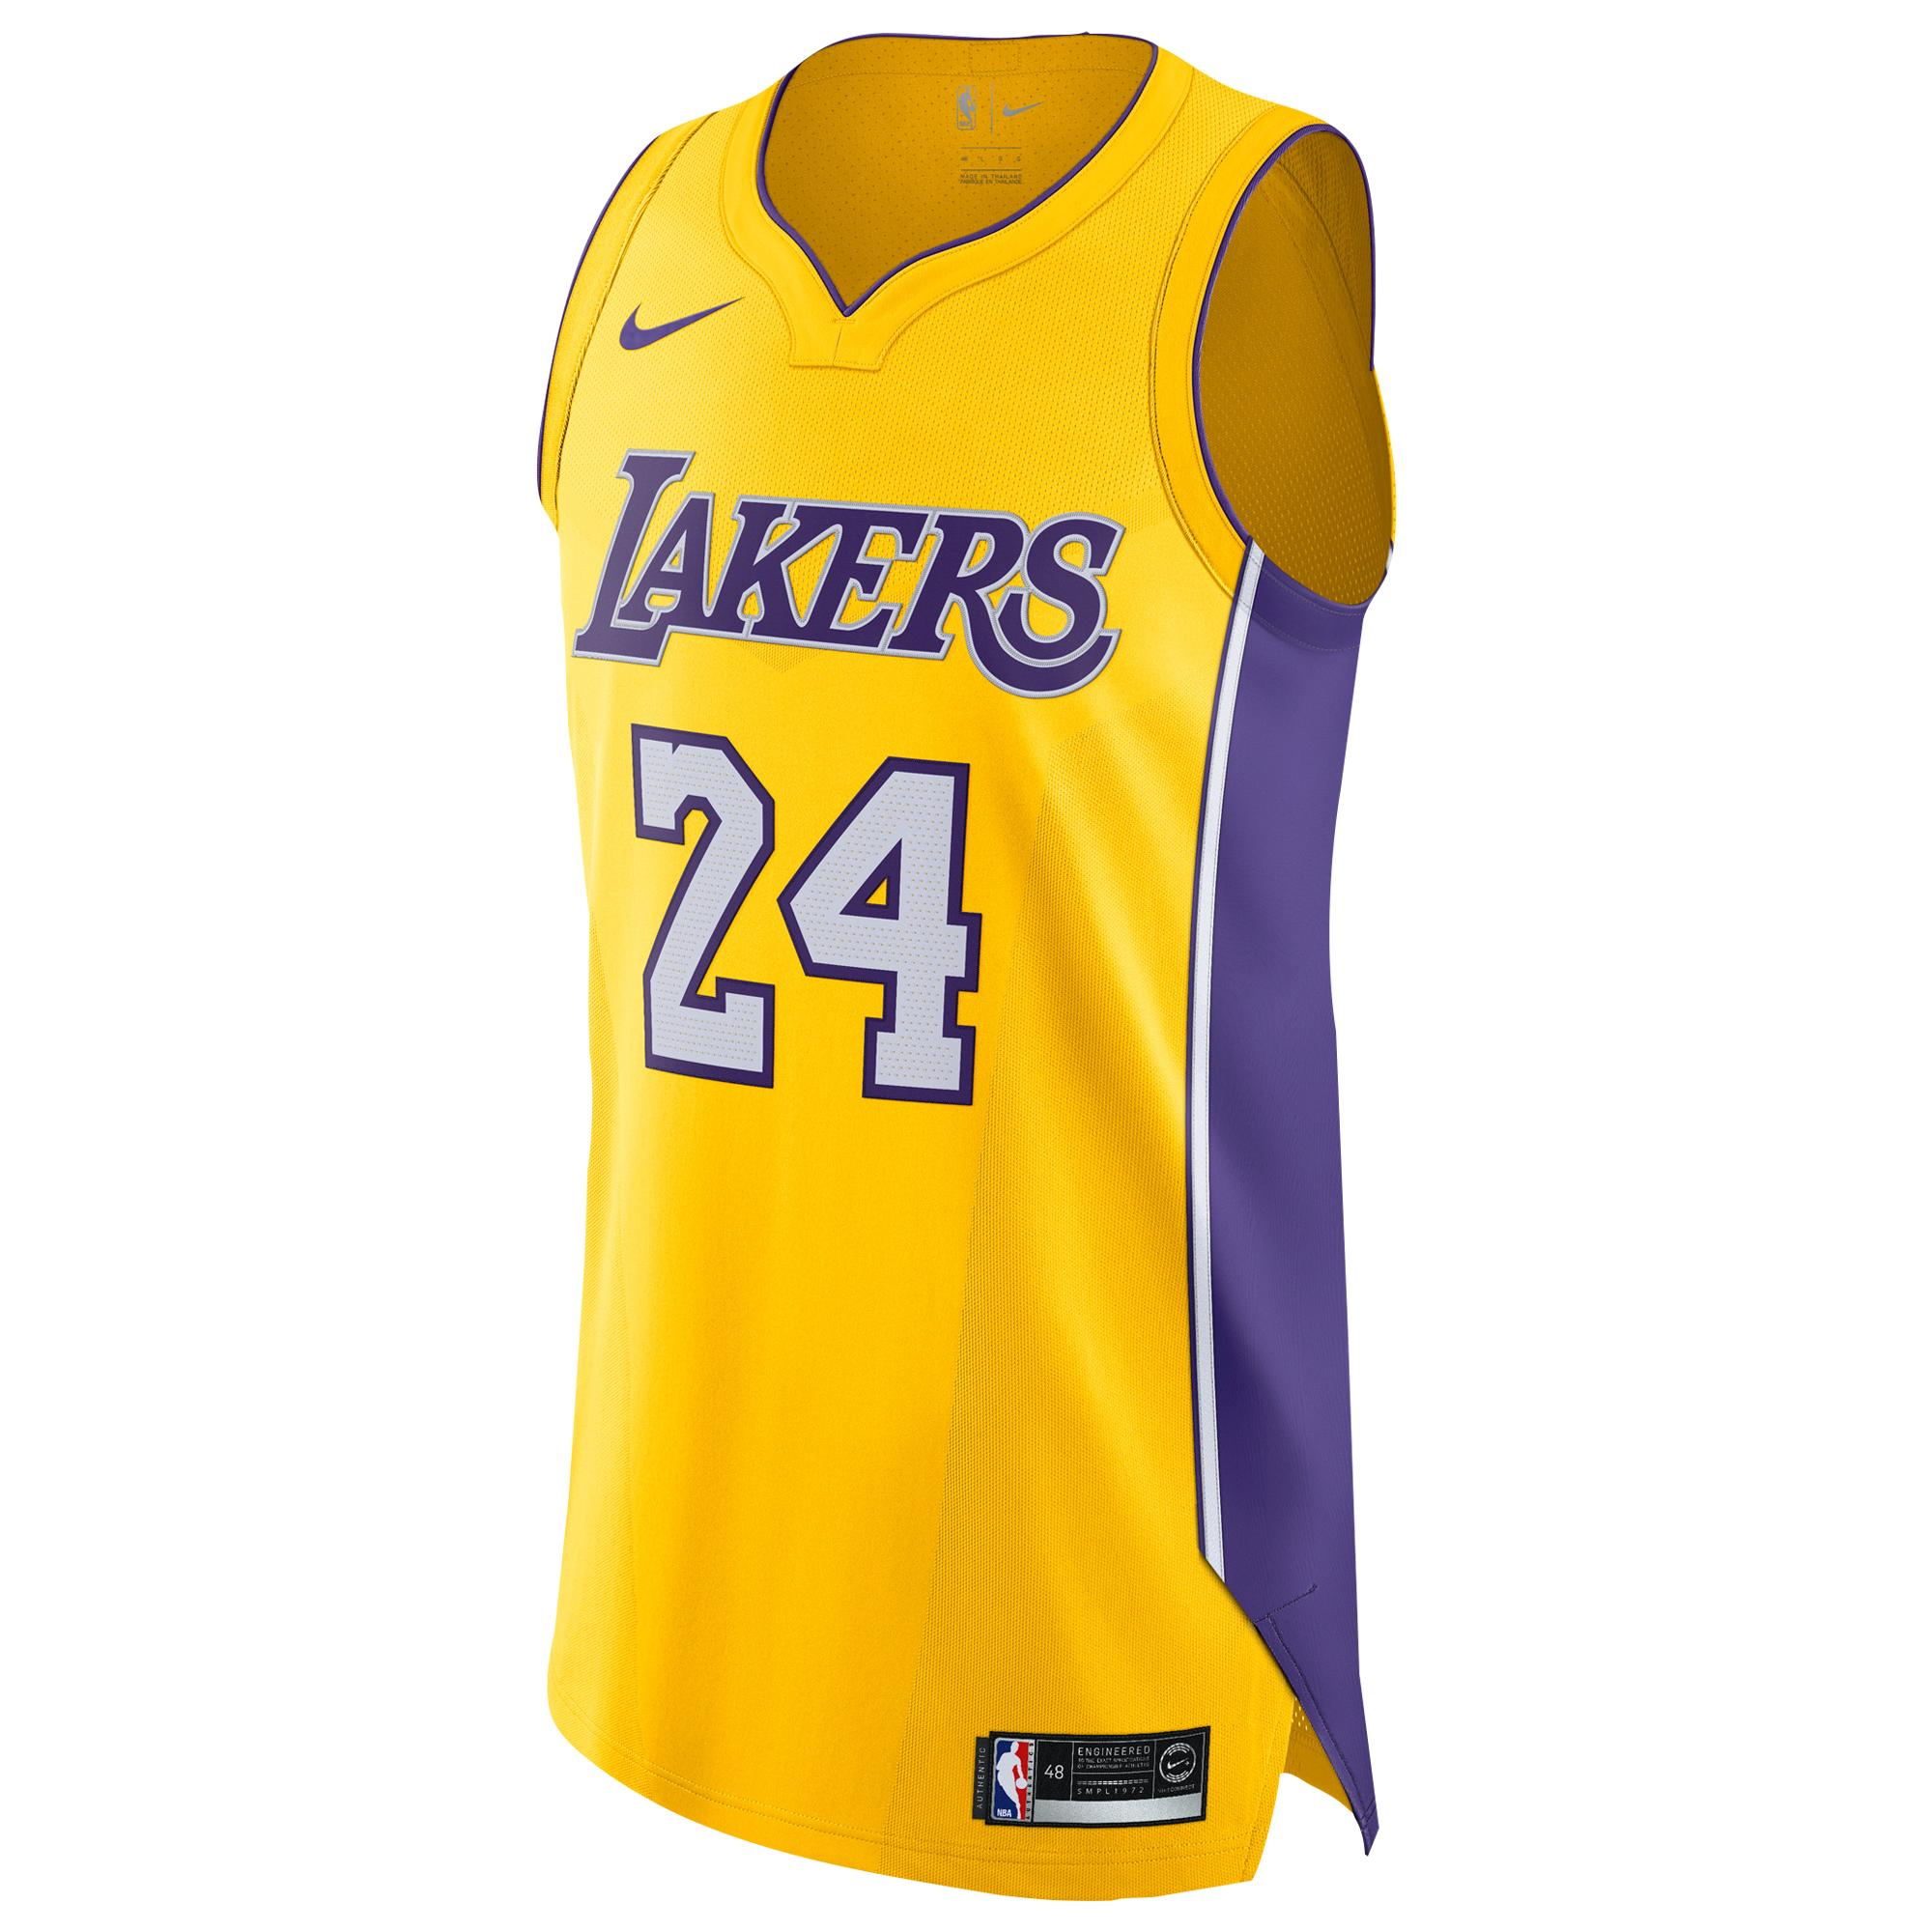 Nike Synthetic Kobe Bryant Nba Authentic Jersey in Yellow for Men ...